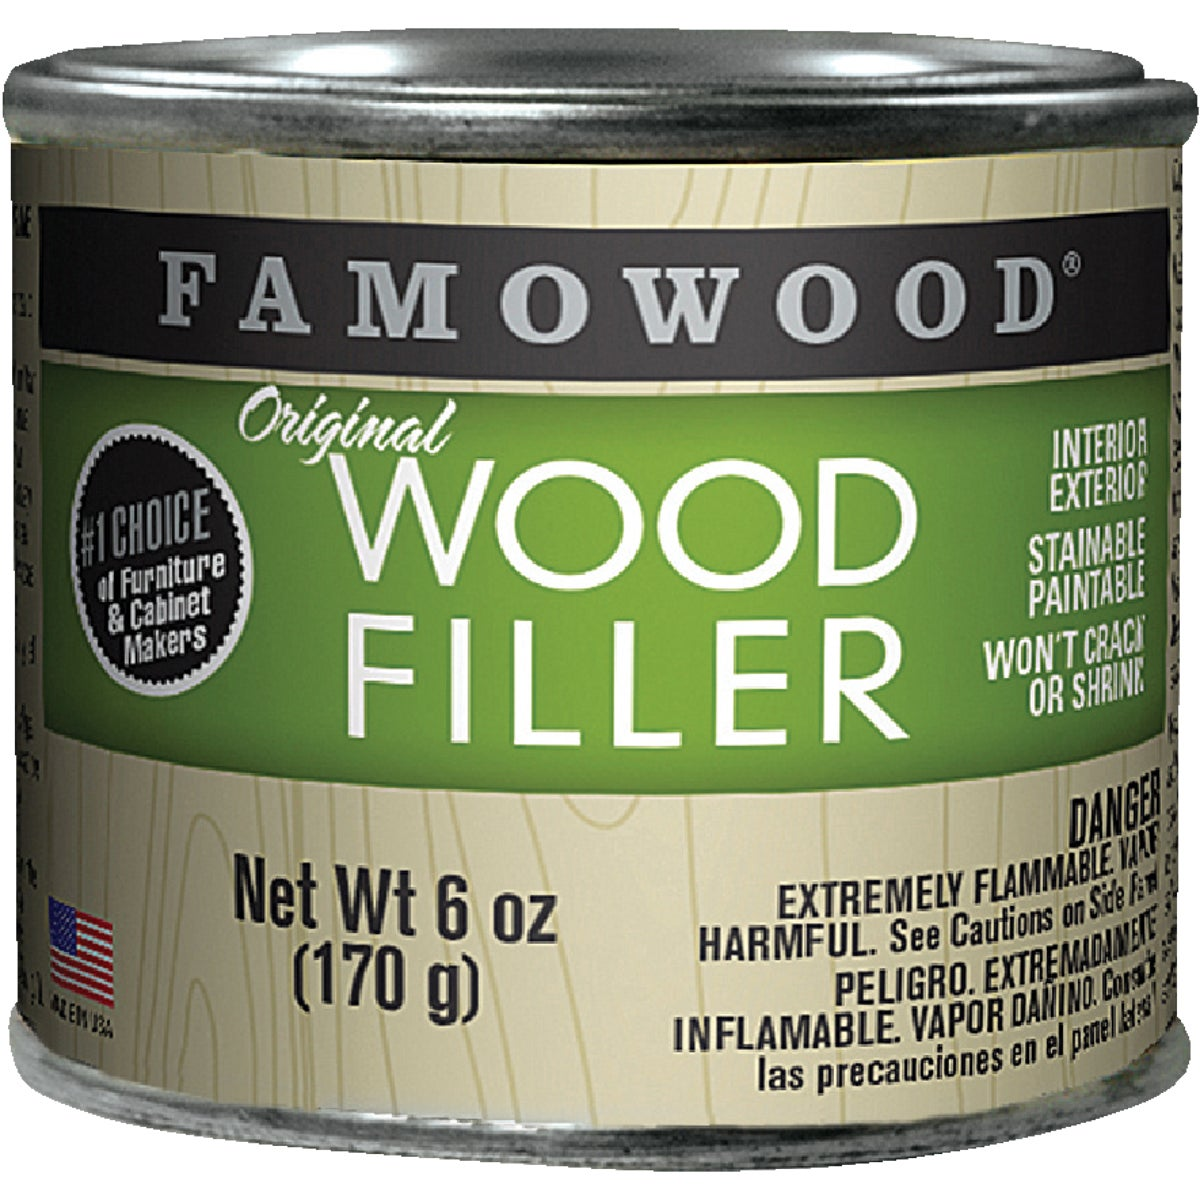 1/4PT BIRCH WOOD FILLER